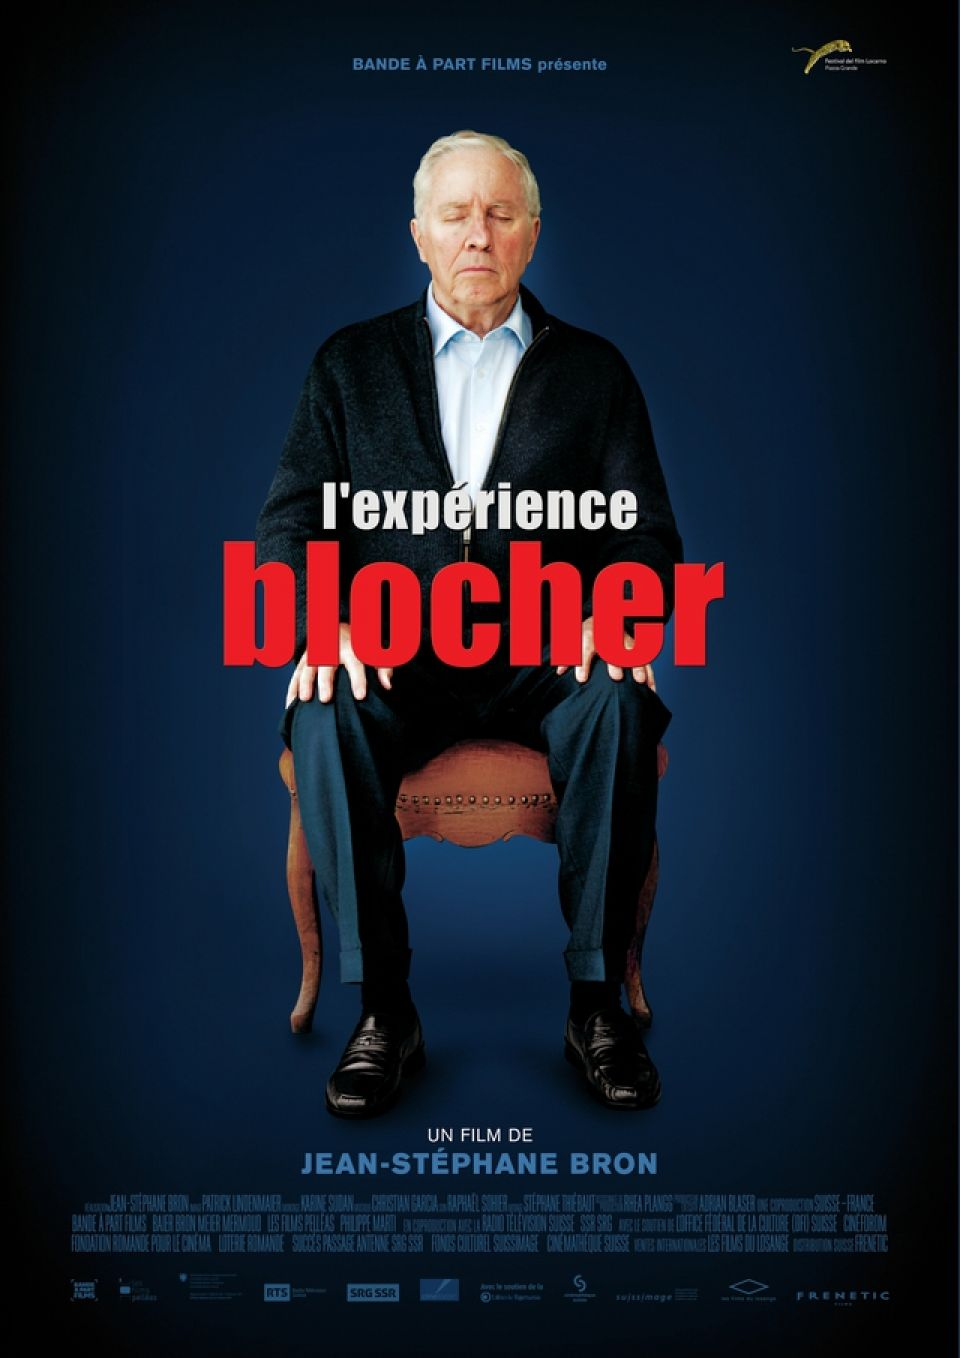 The Blocher Experience